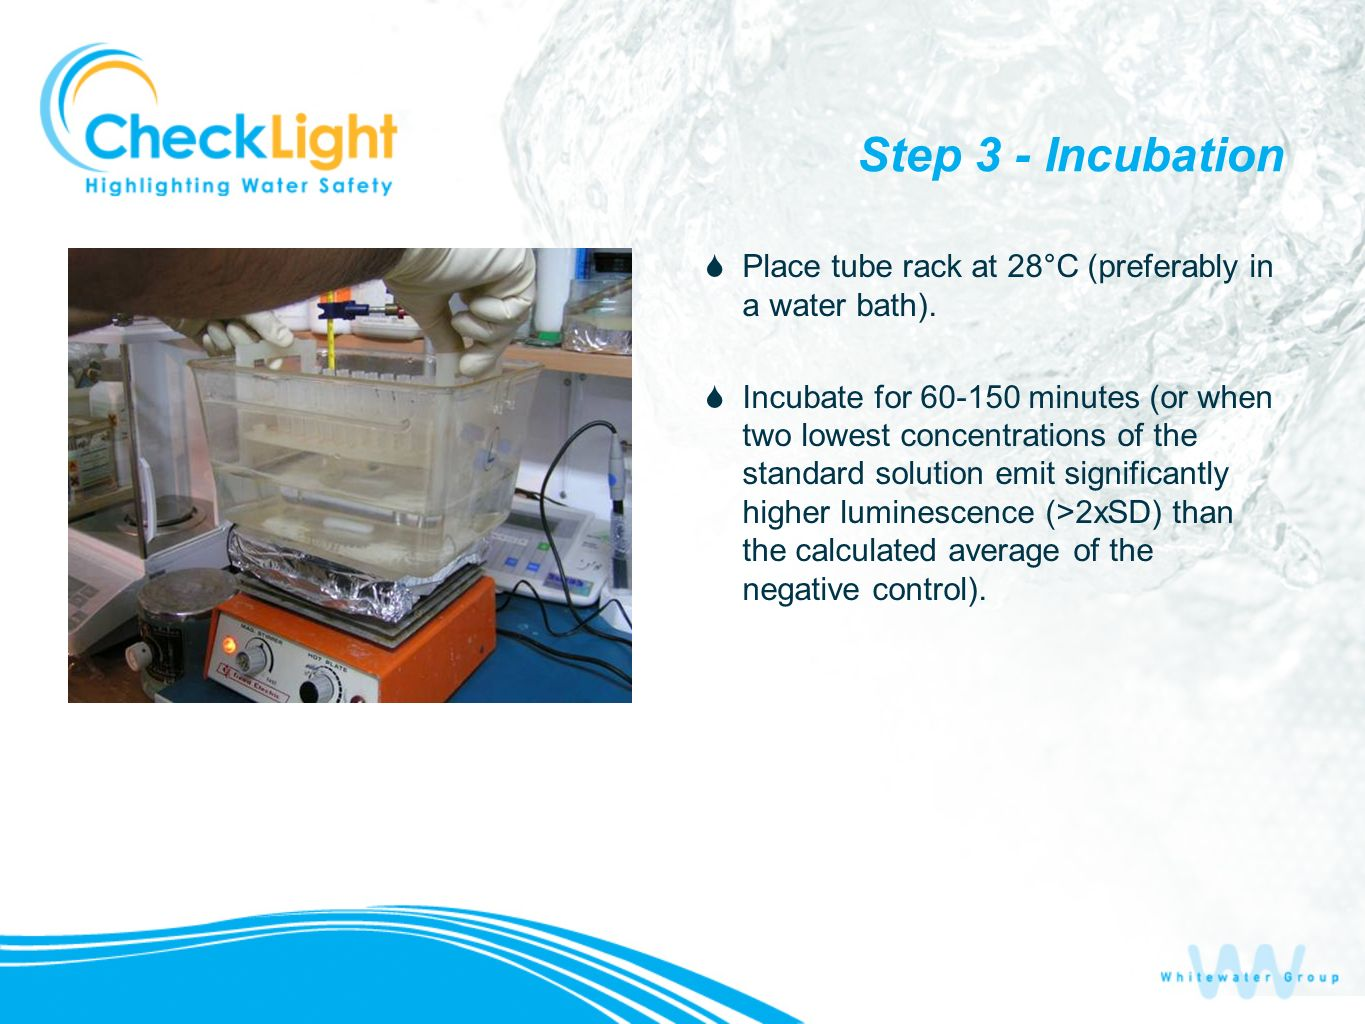 Step 3 - Incubation Place tube rack at 28°C (preferably in a water bath). Incubate for 60-150 minutes (or when two lowest concentrations of the standa